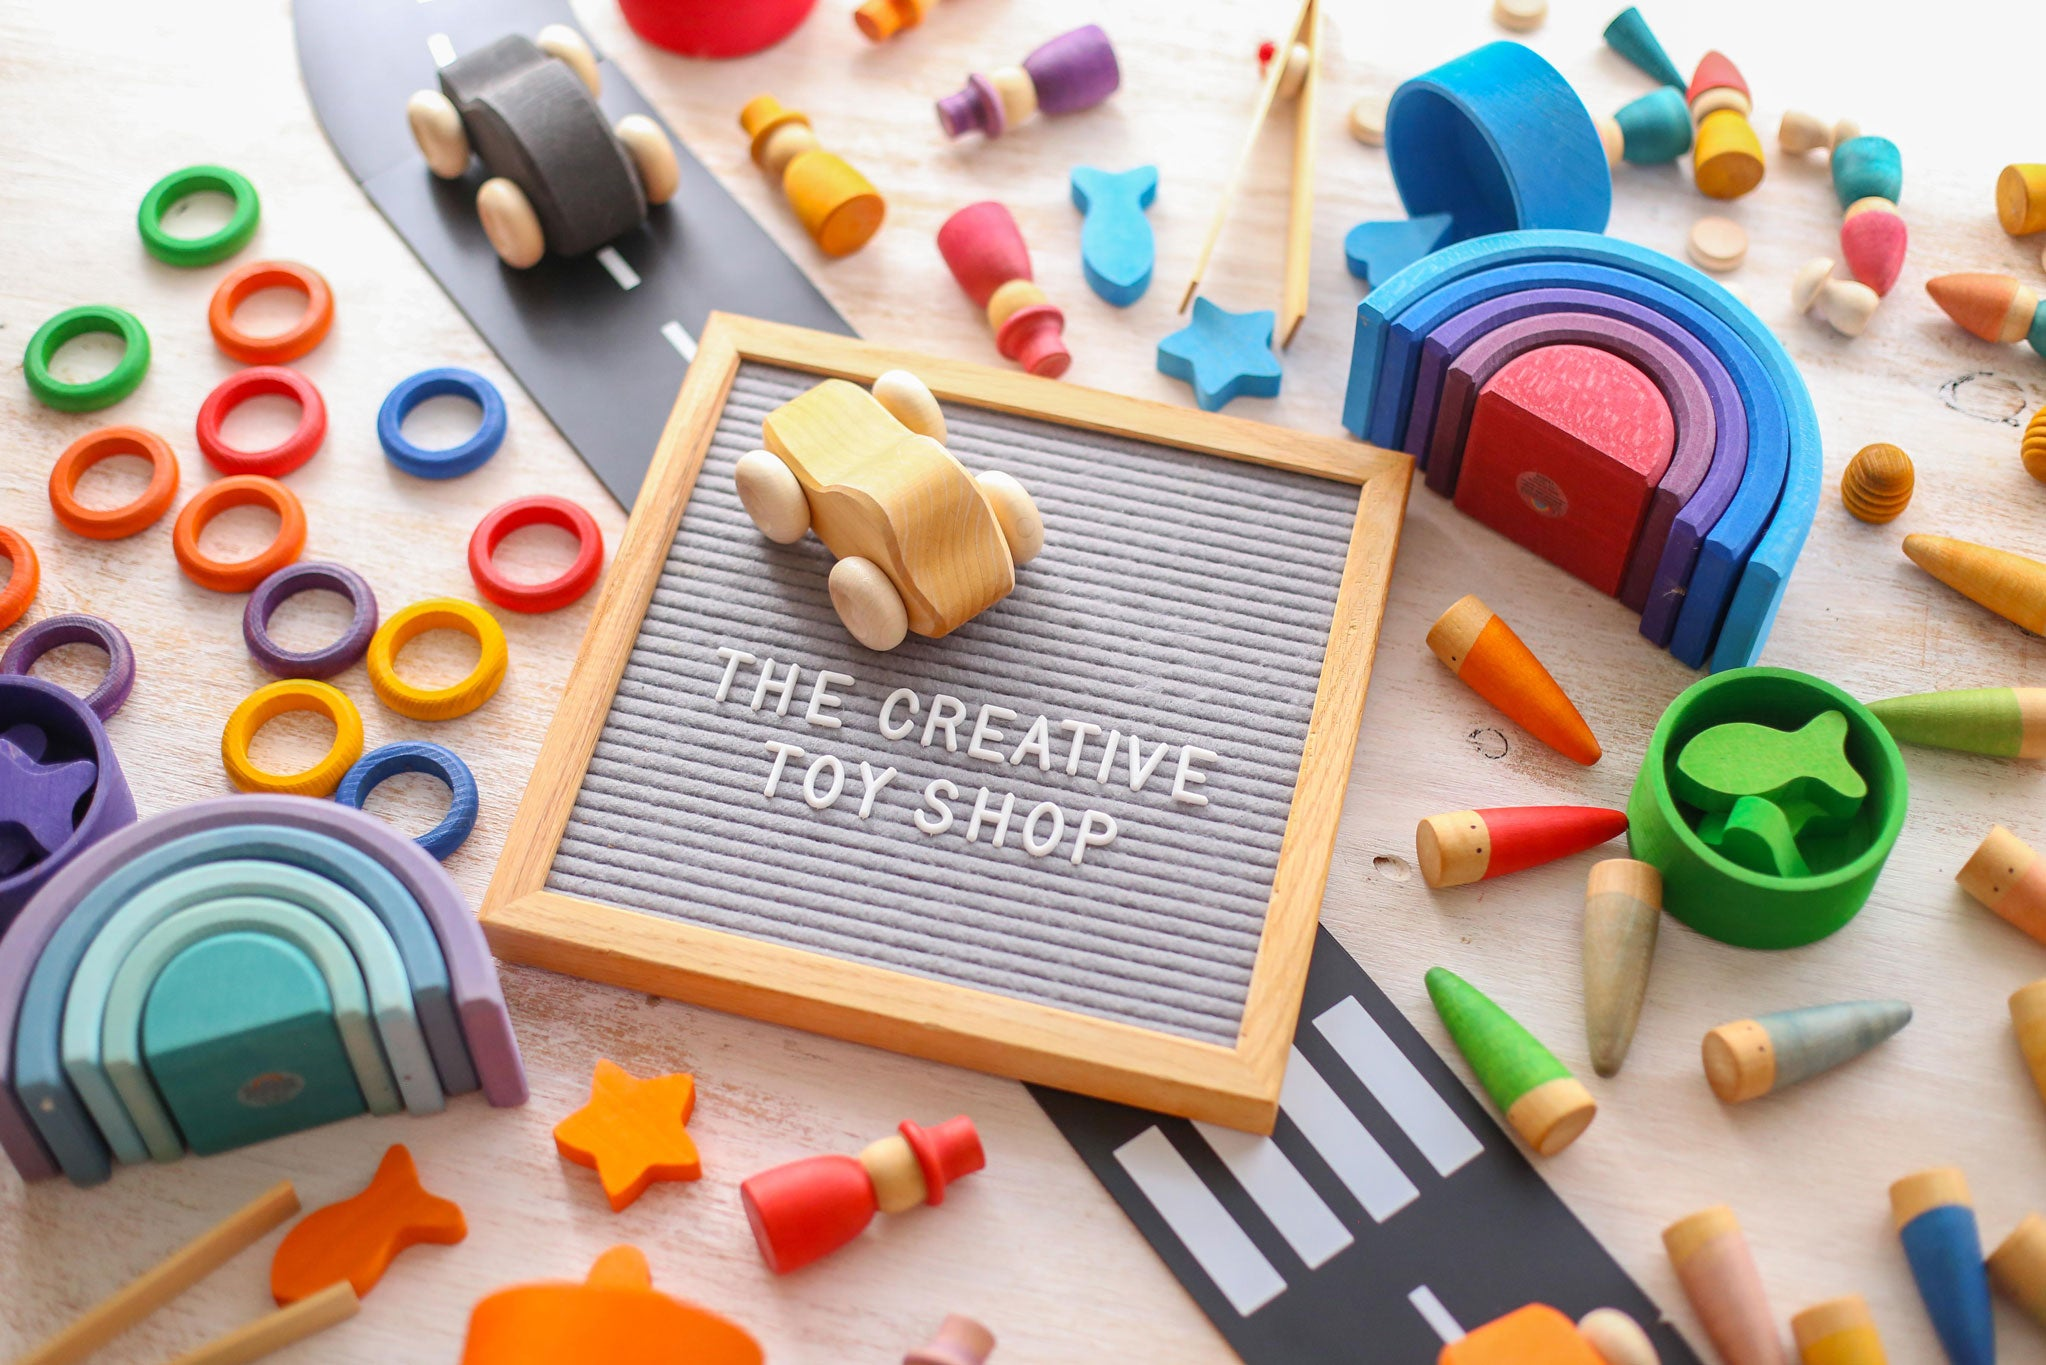 The Creative Toy Shop